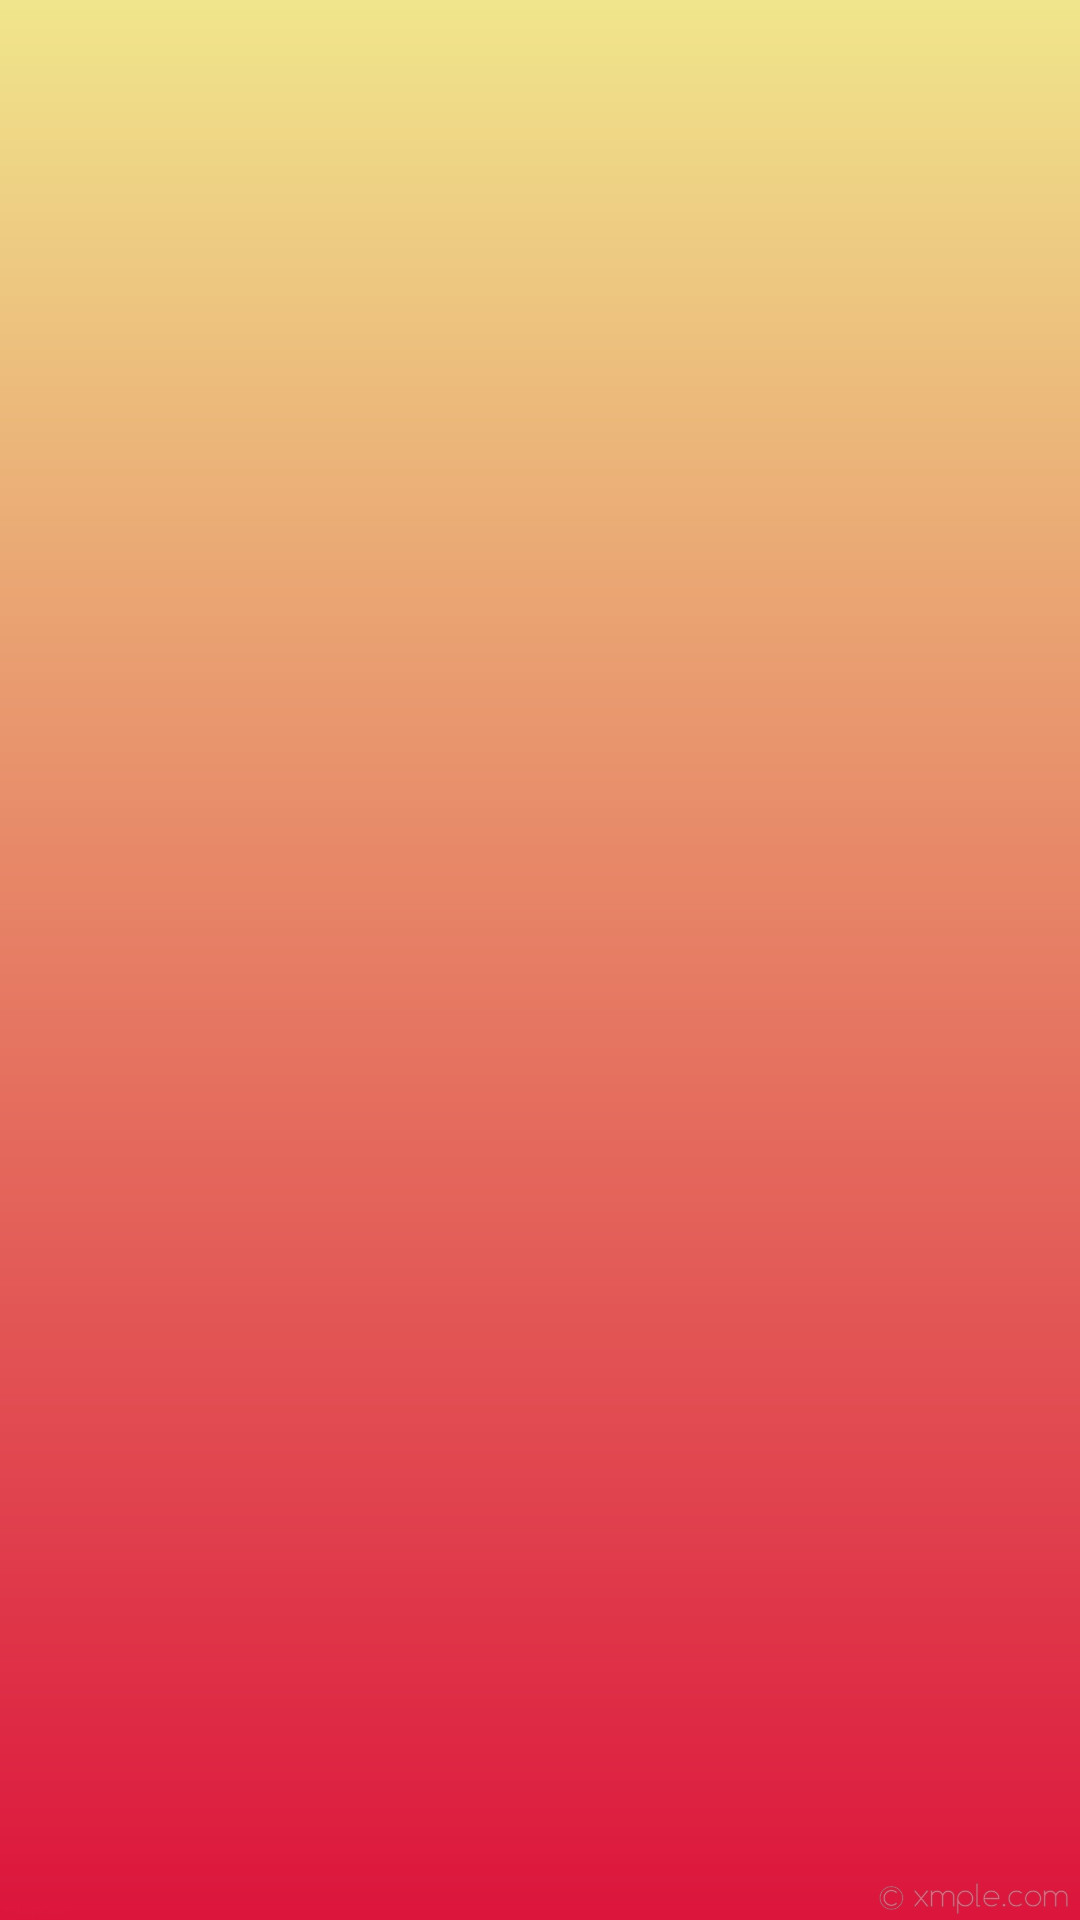 1080x1920 wallpaper linear red yellow gradient khaki crimson #f0e68c #dc143c 90°